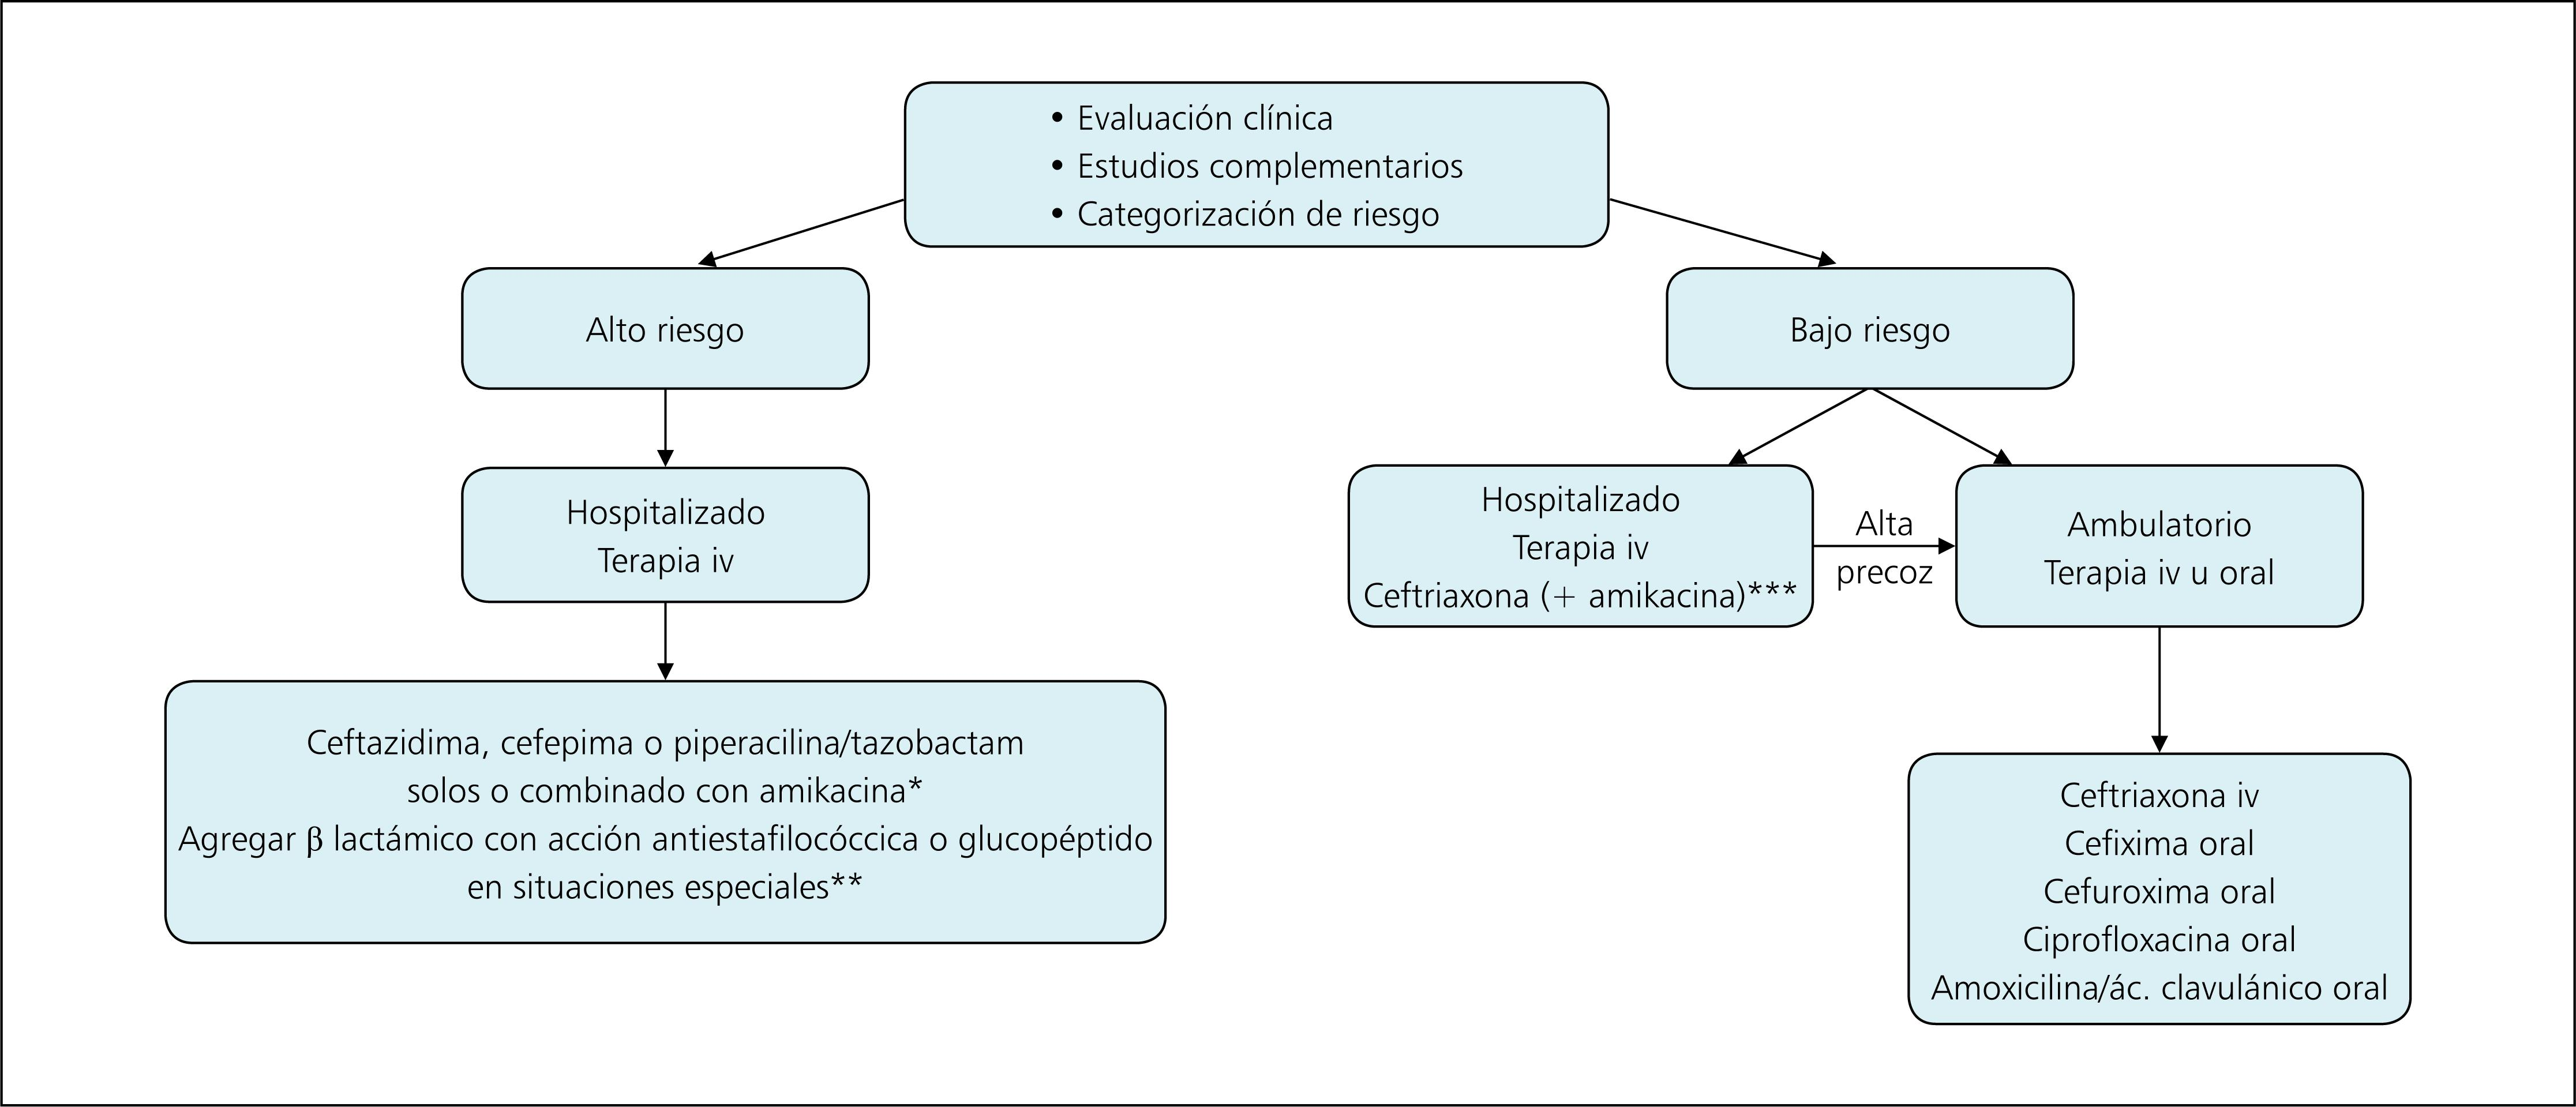 Parte Iv Terapia Antimicrobiana En Pacientes Con Cancer Y